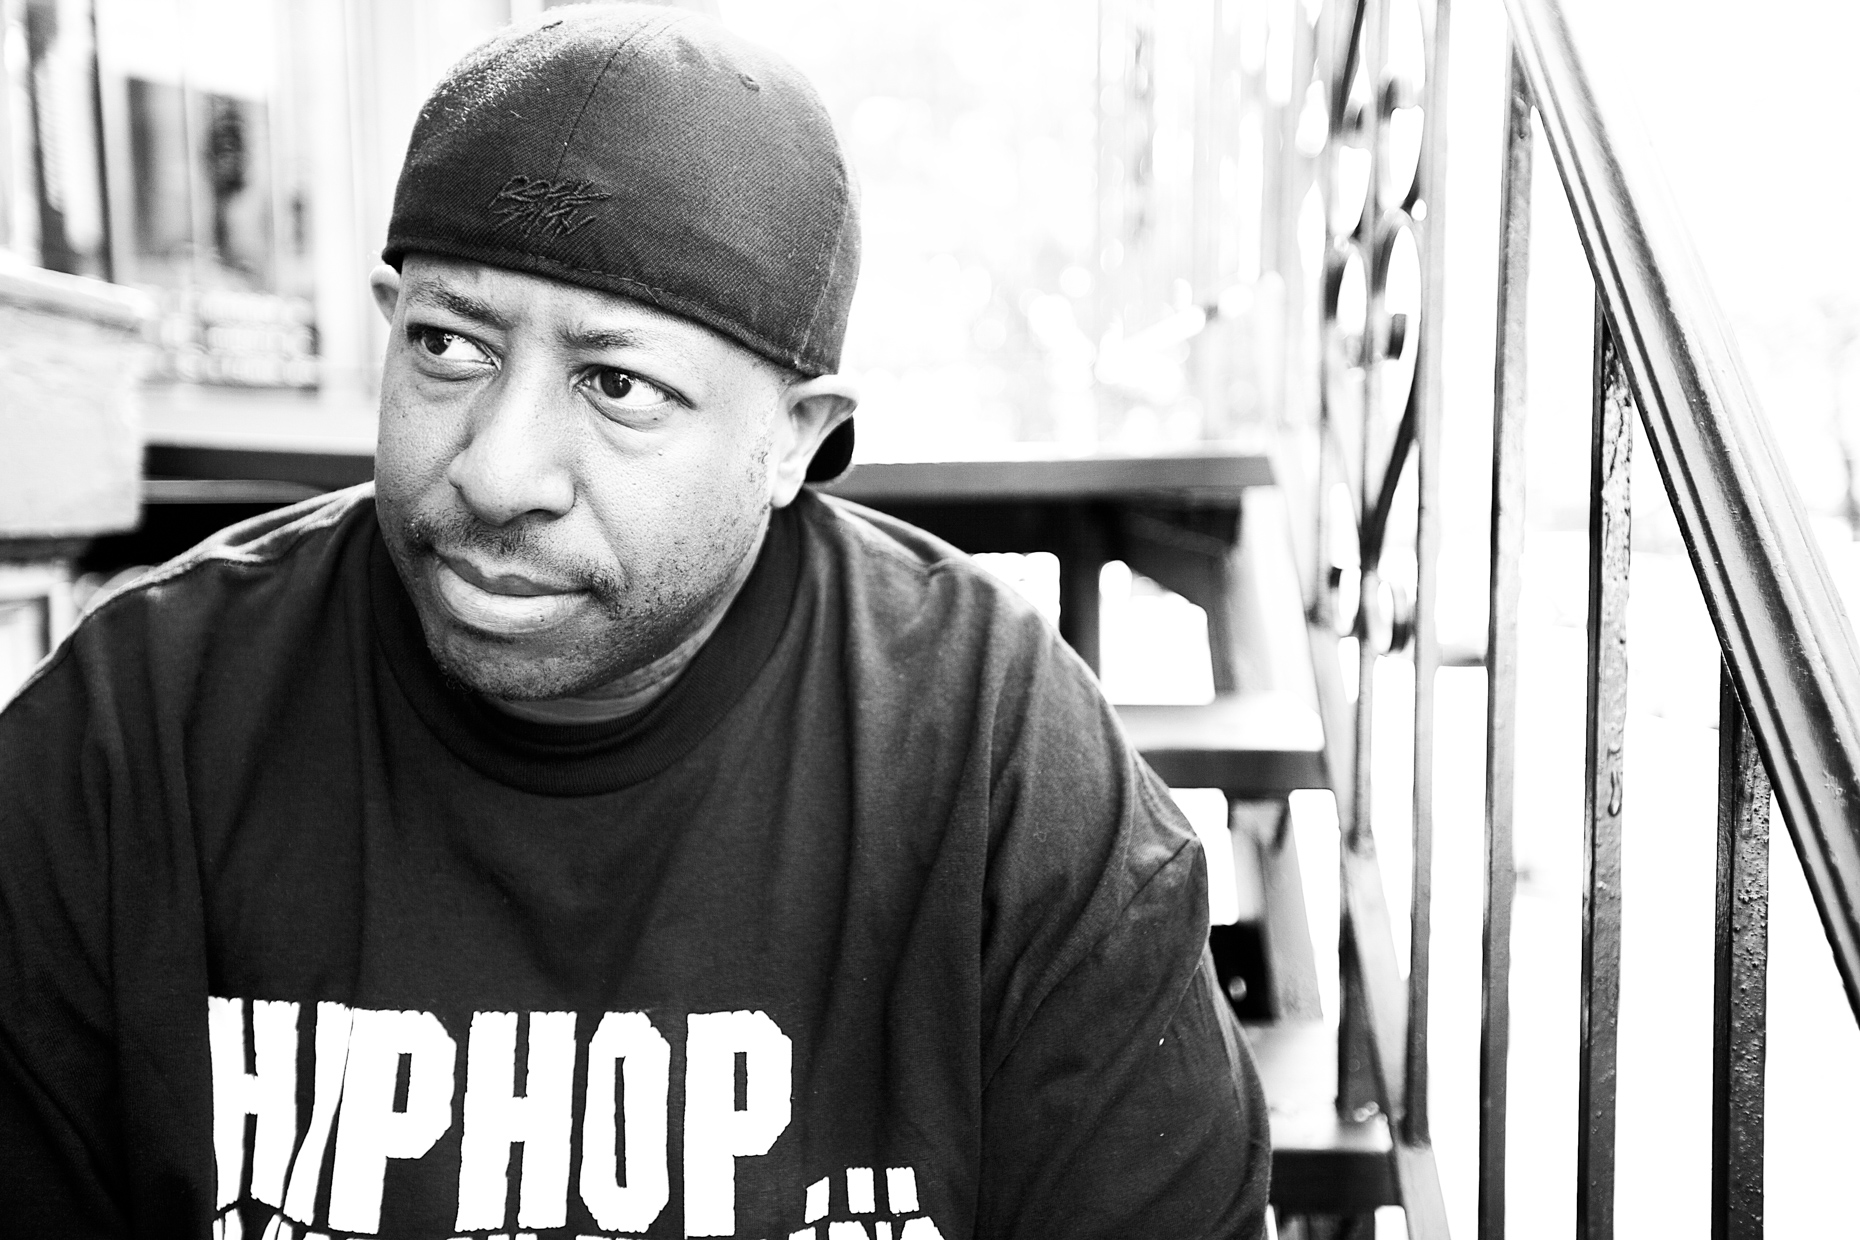 DJ Premier for Hyundai Re:Generation by Boston based commercial portrait photographer Brian Nevins